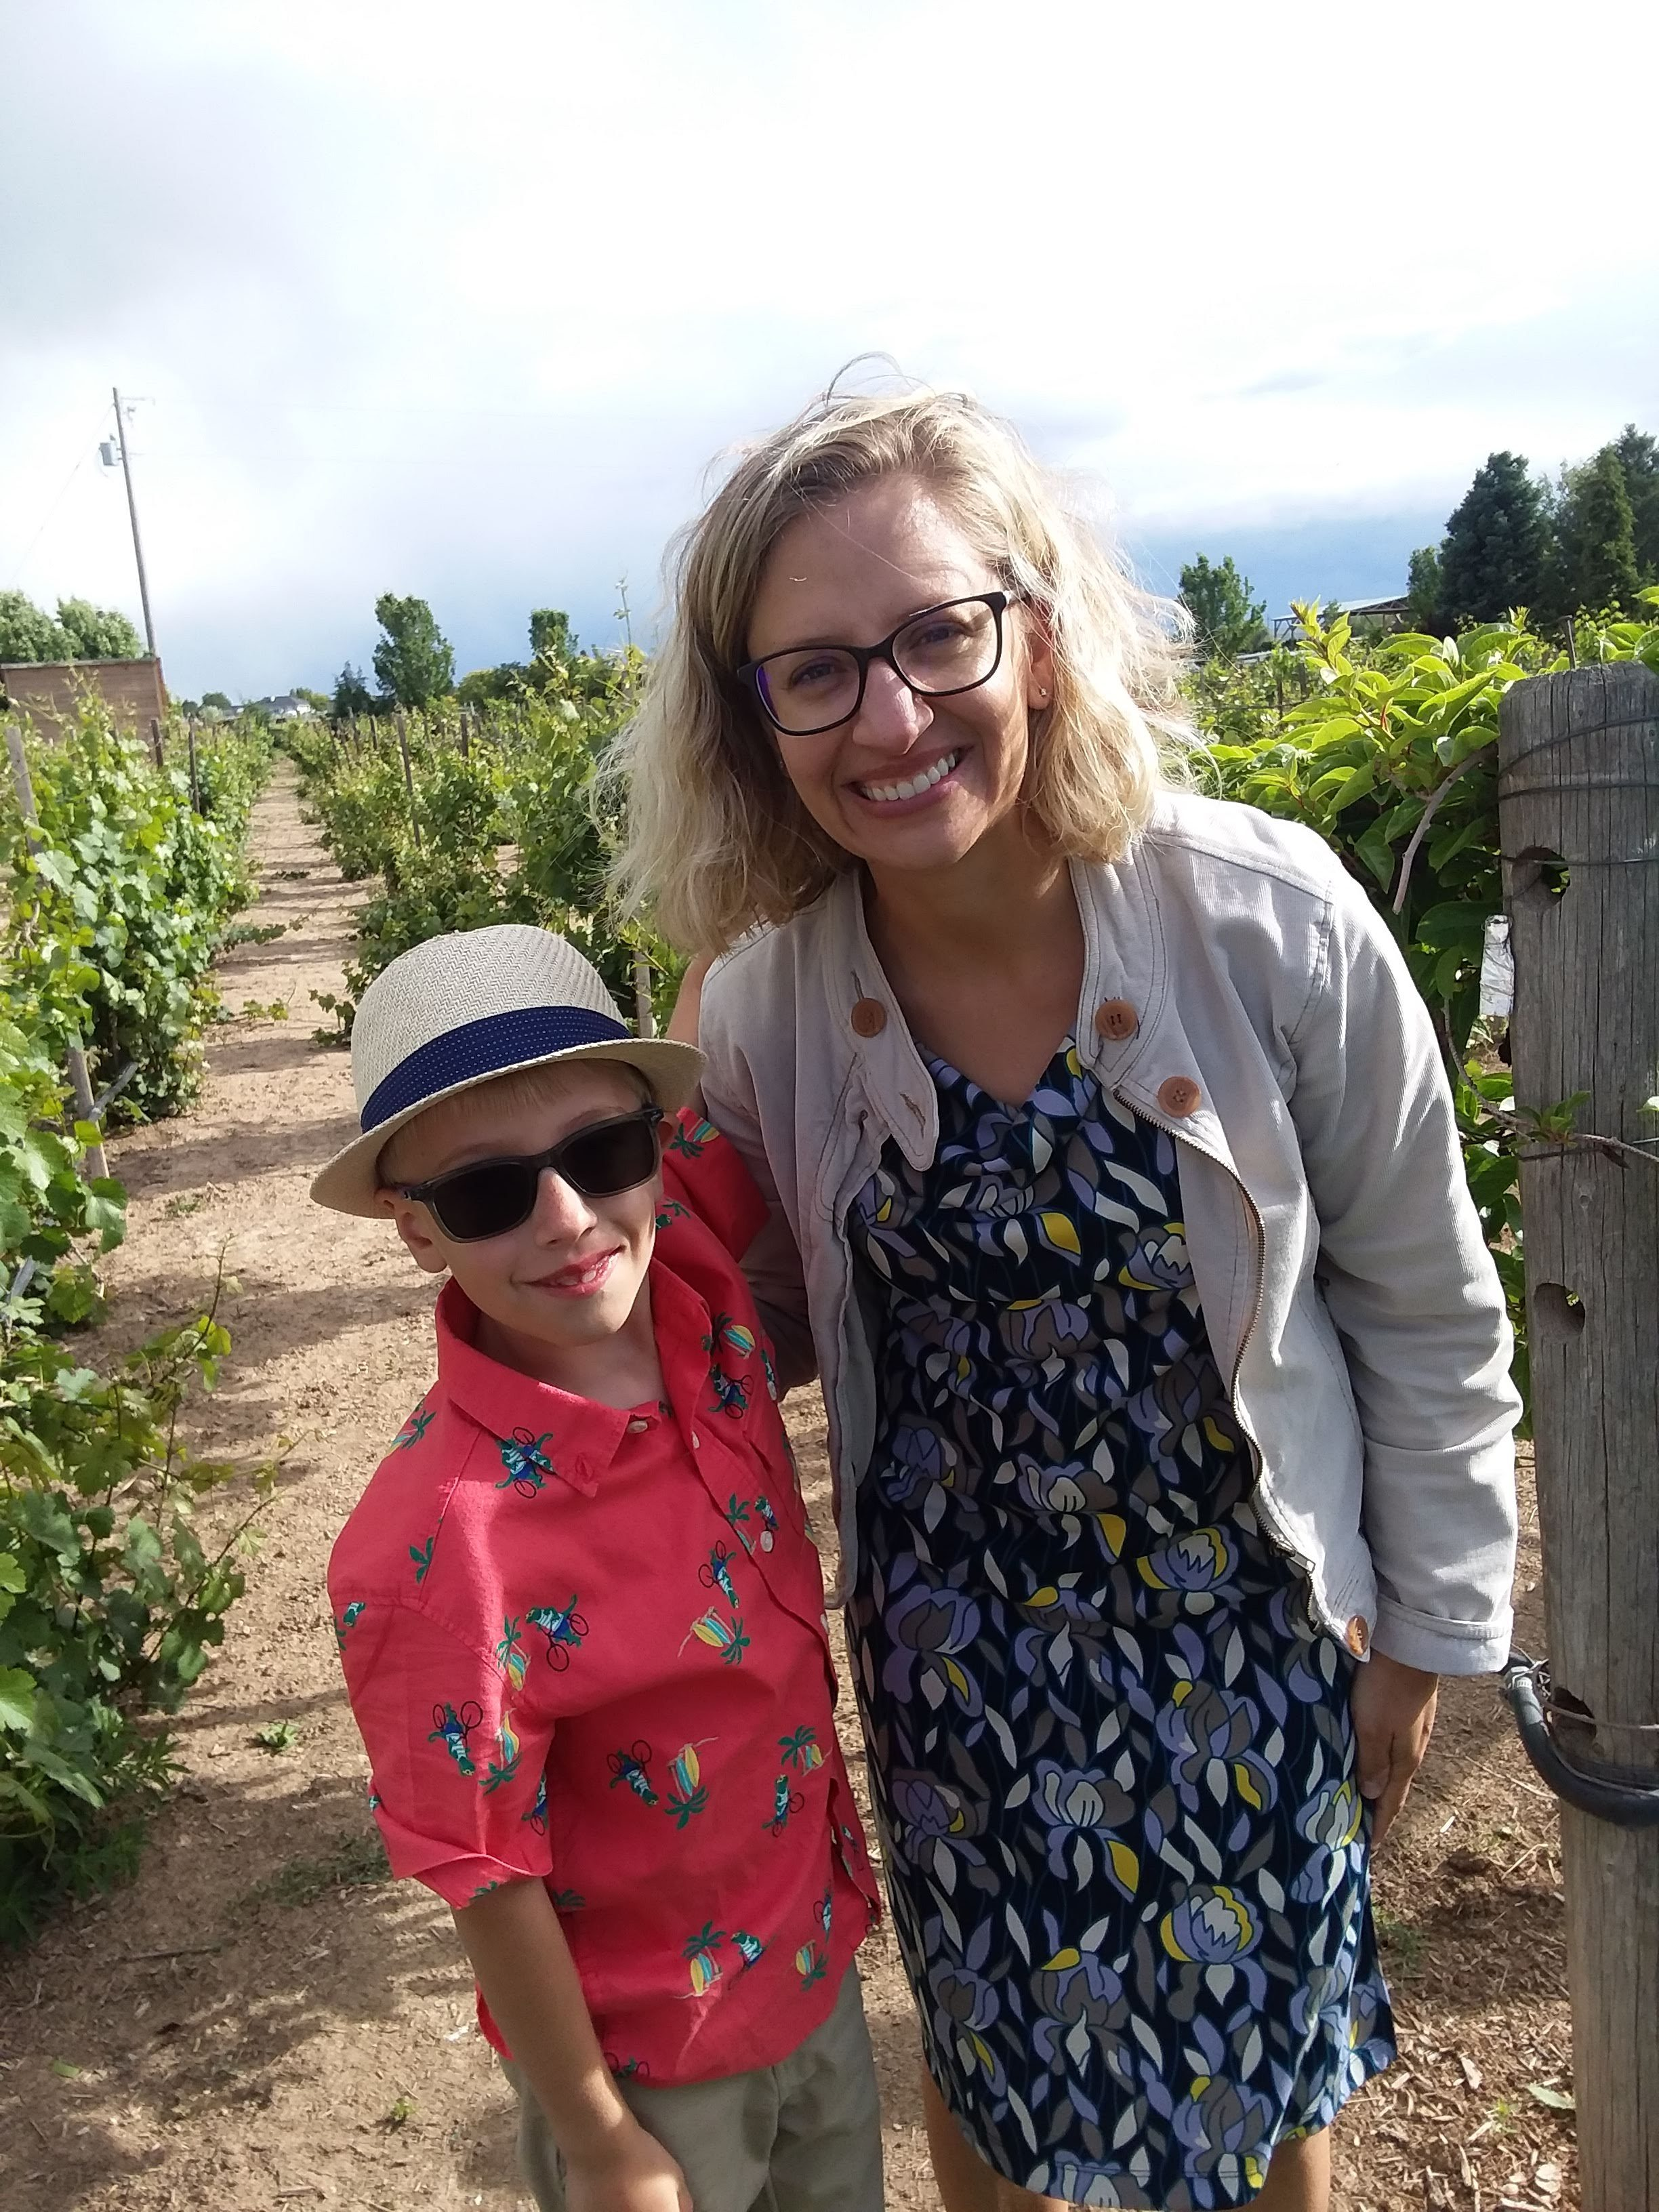 Casie Cook visits a farm with her son.